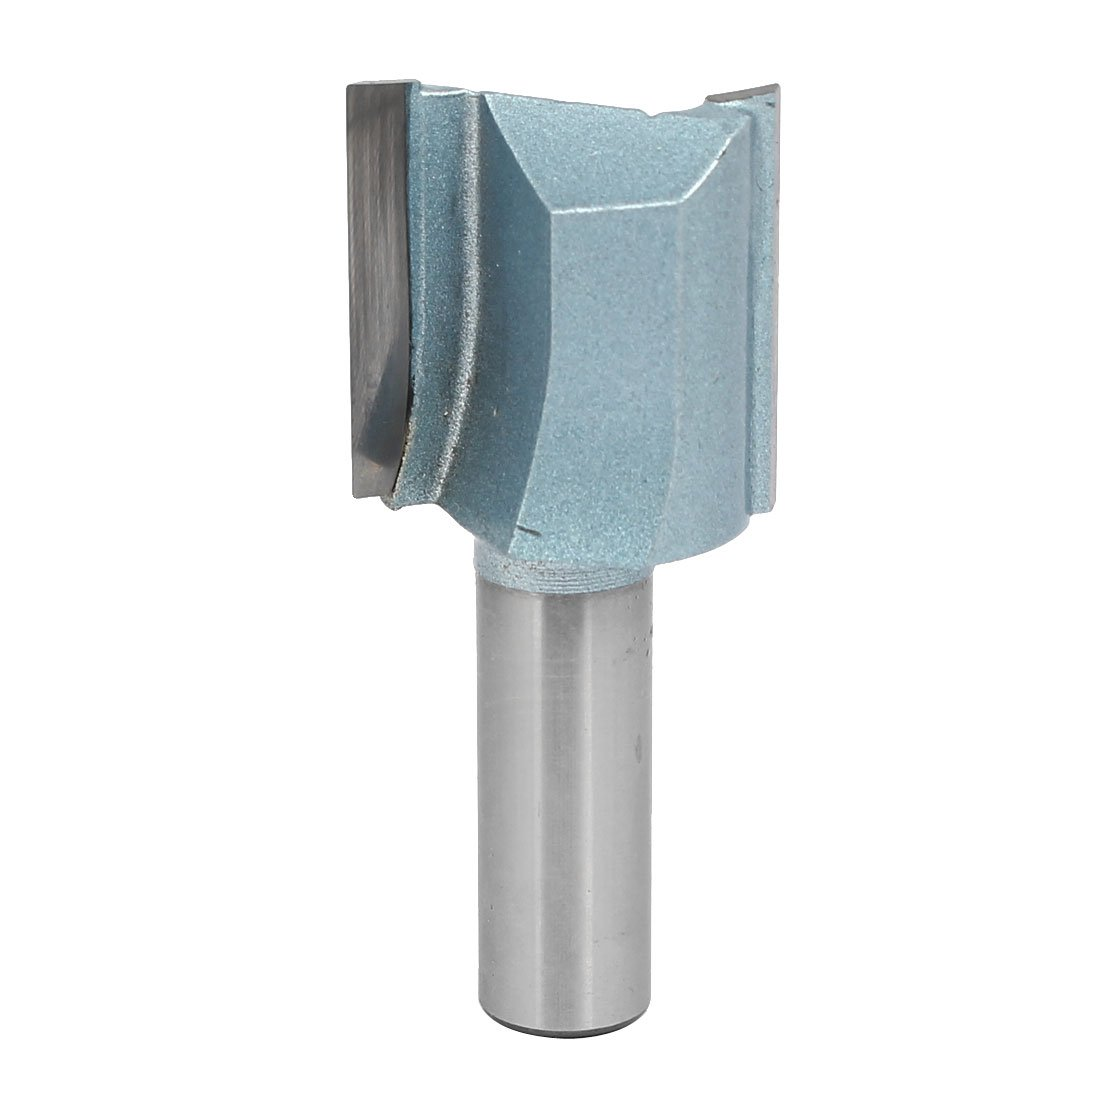 uxcell 1//2-inch Dia by 3-inch Depth Double Flute Extra Long Straight Router Bit with 1//2-inch Shank